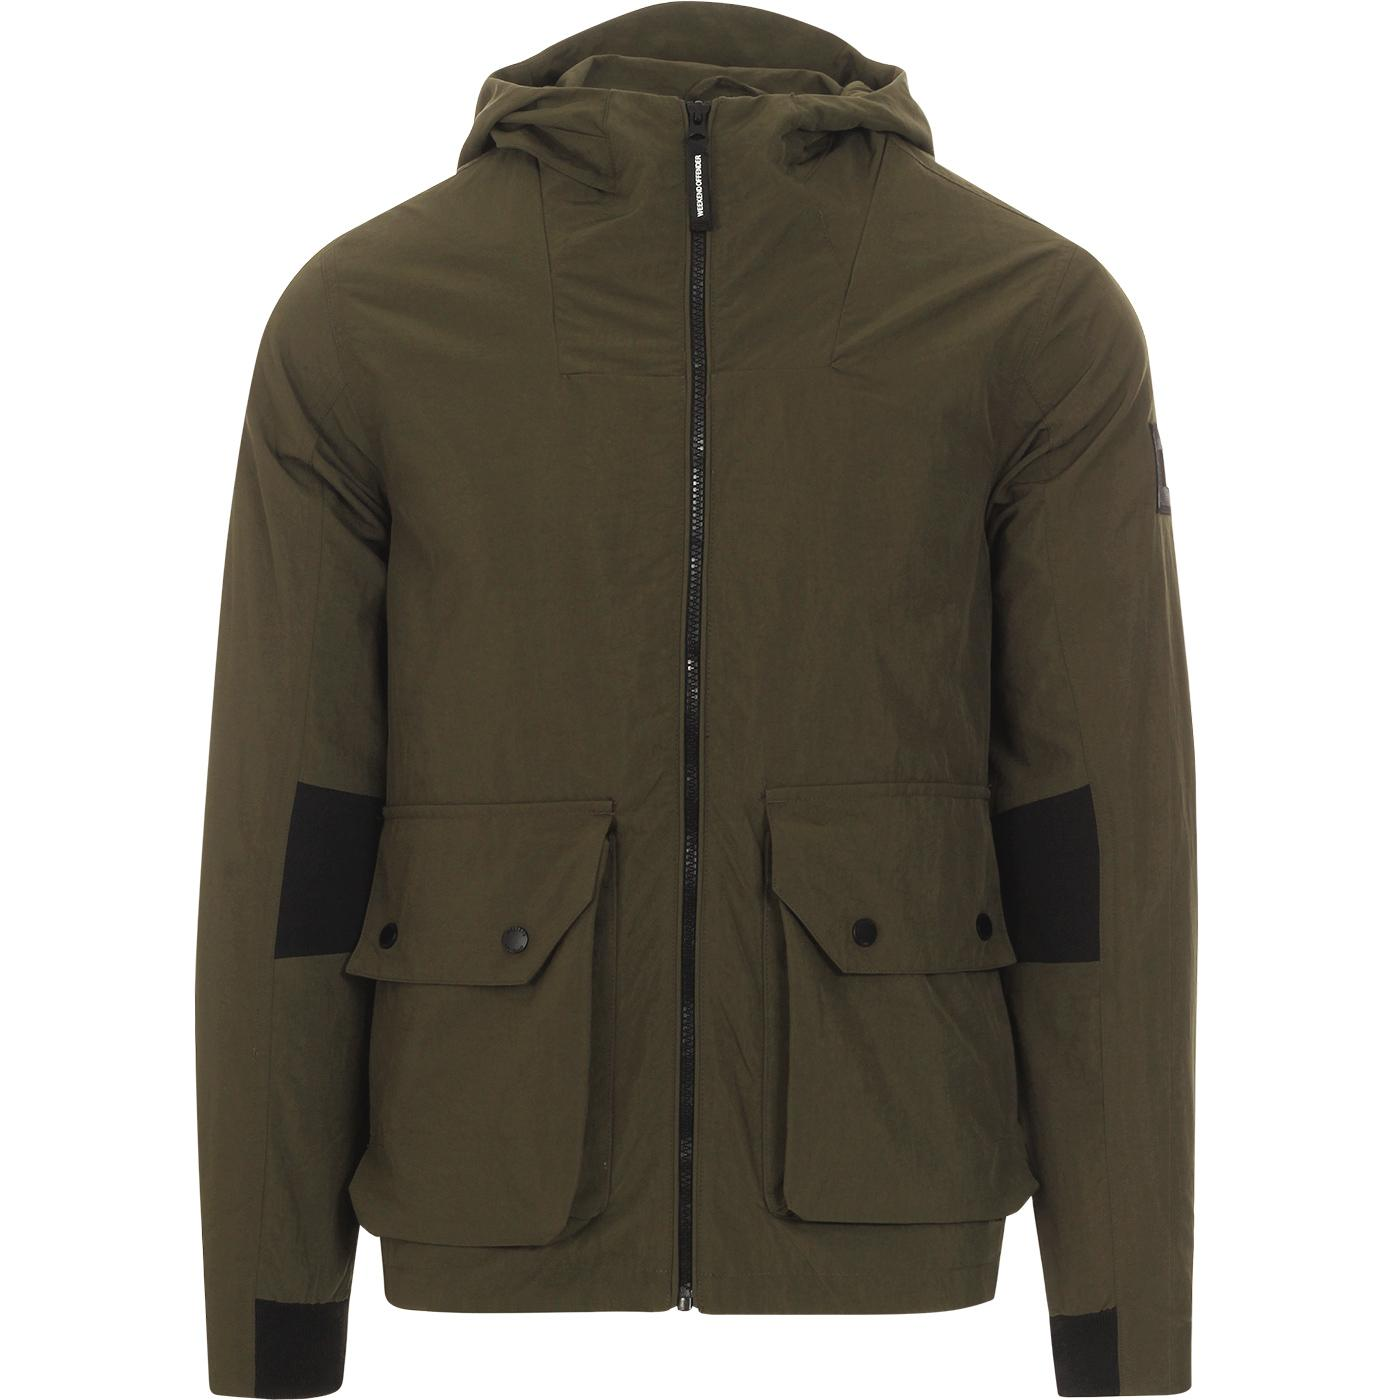 Valencia WEEKEND OFFENDER Retro Hooded Jacket (F)